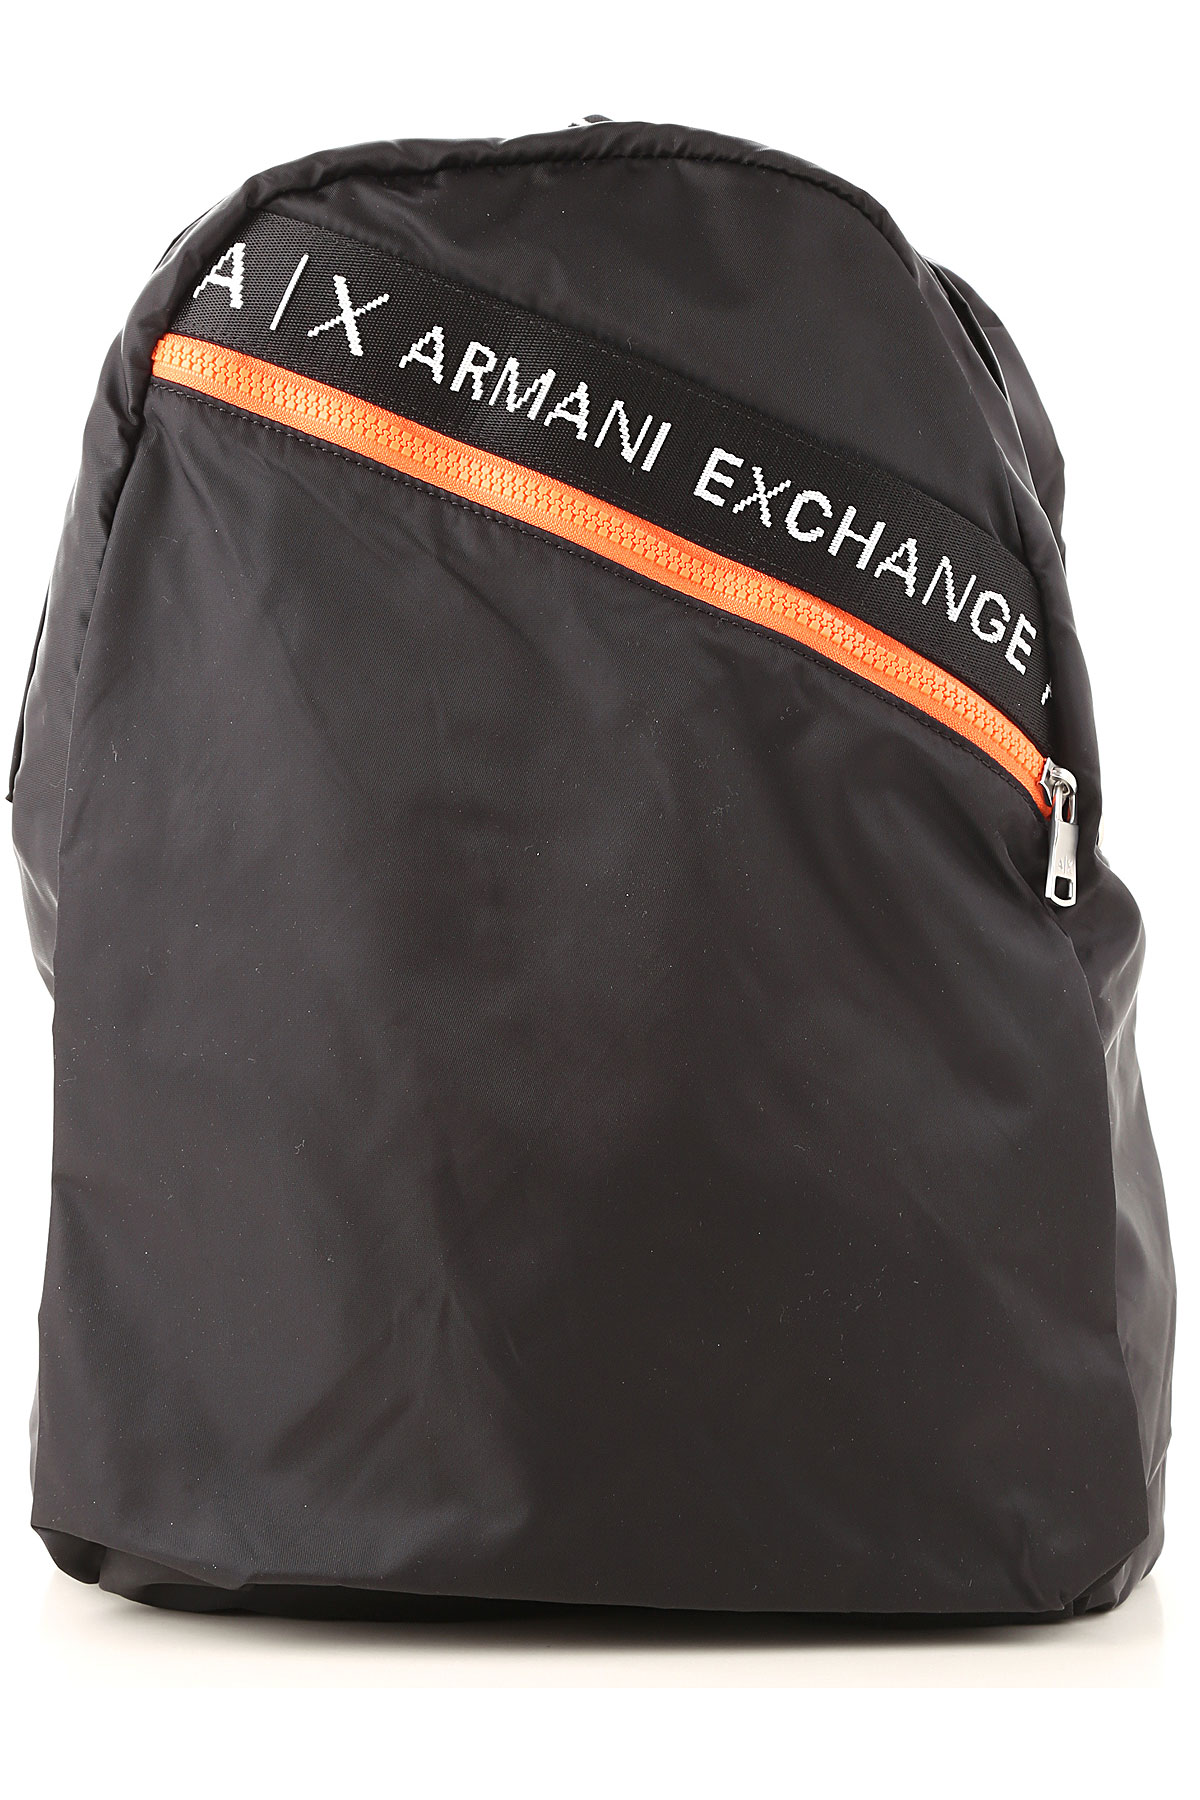 Armani Exchange Backpack for Men On Sale, Black, poliammide, 2019